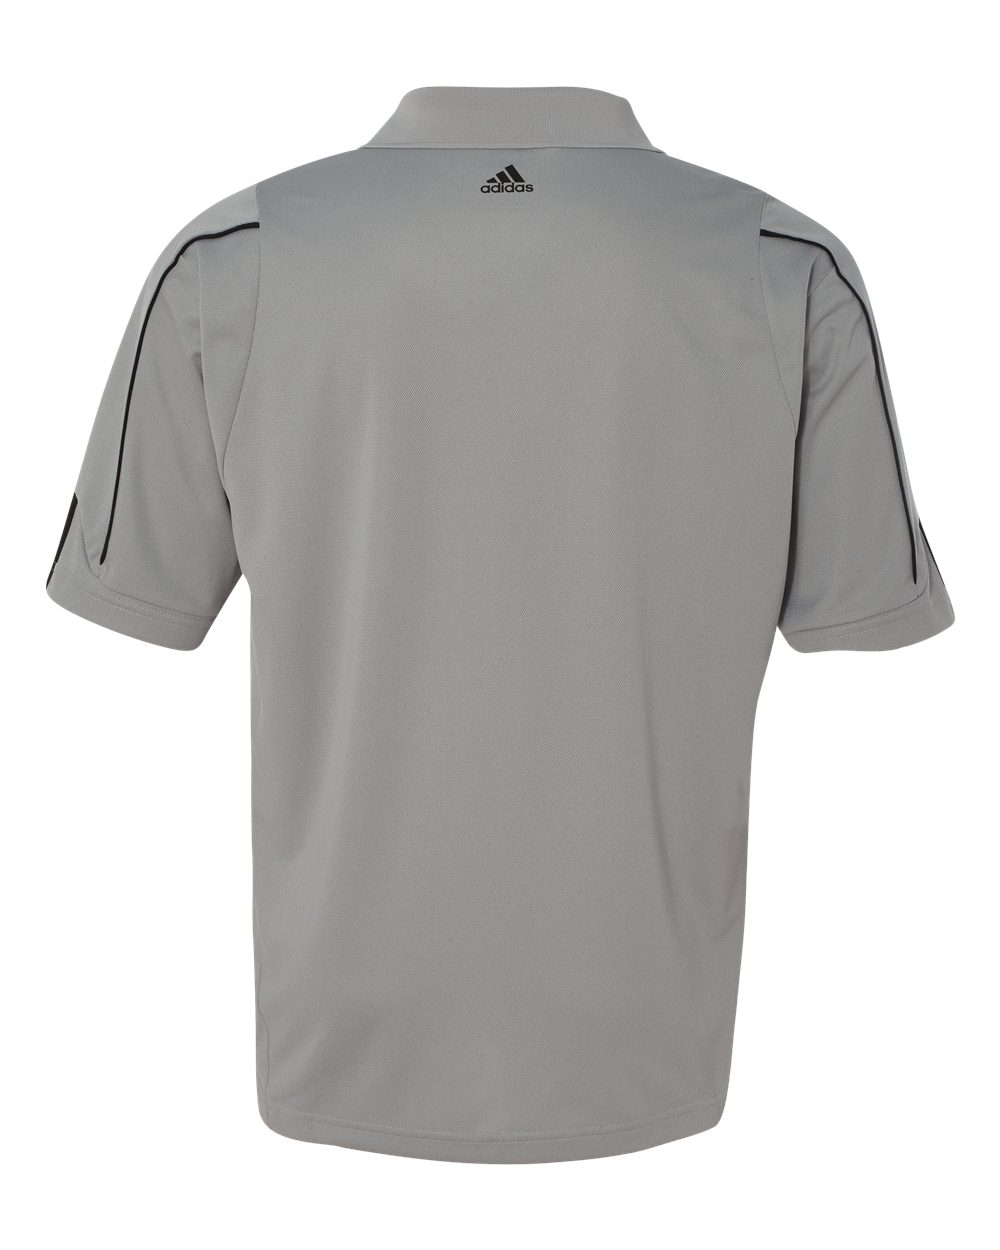 Adidas-Mens-Climalite-3-Stripes-Cuff-Sport-Shirt-A76-up-to-4XL miniature 25